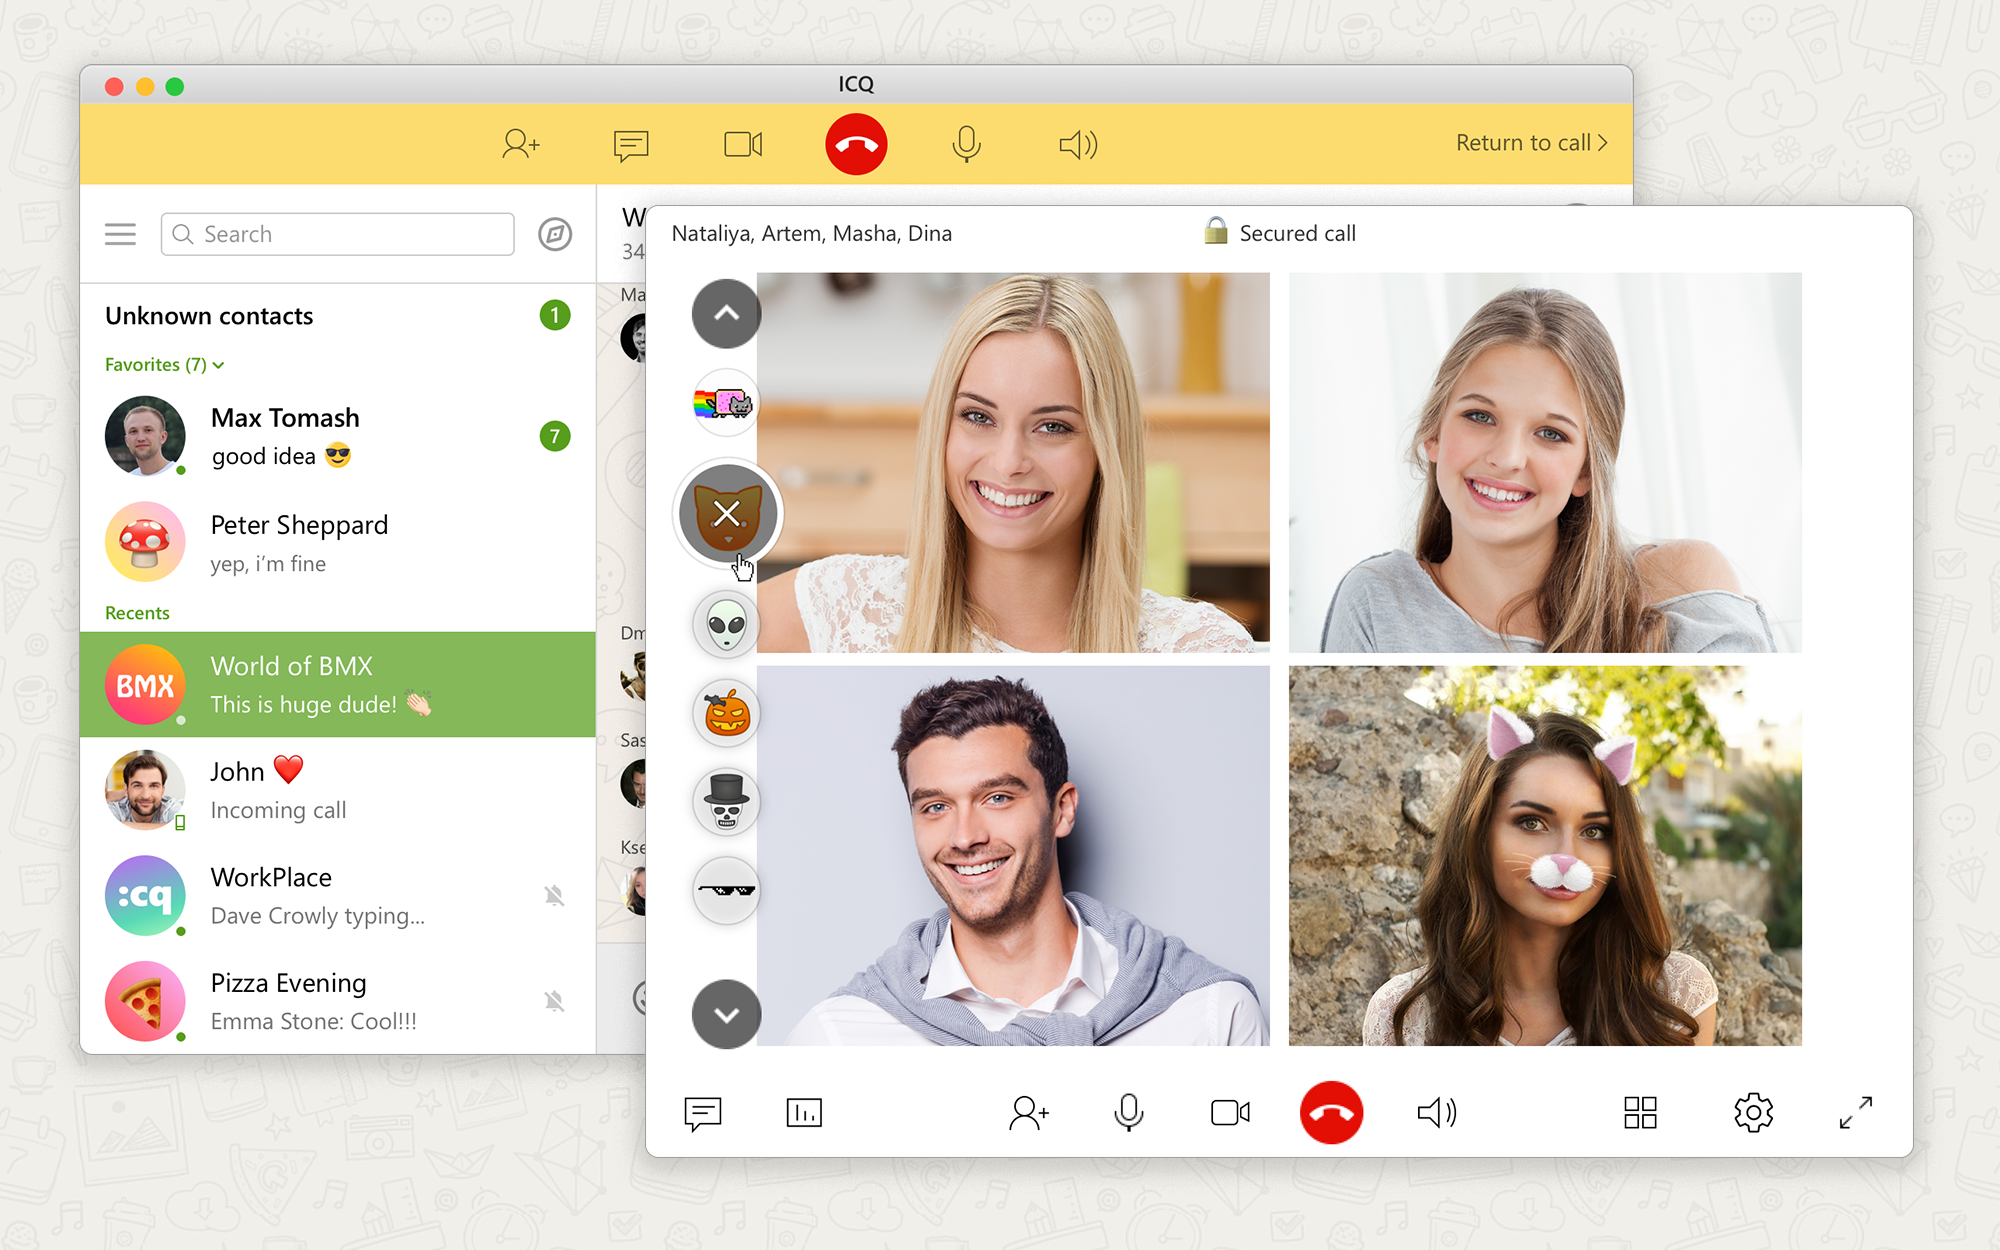 ICQ Messenger Introduces Group Video Calls - Dimitry O